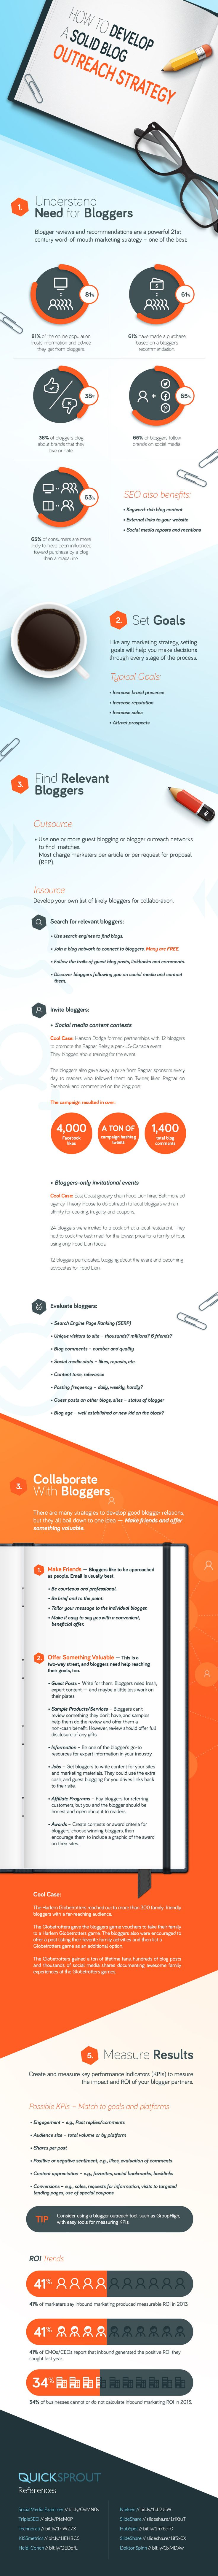 How to develop a solid blog outreach strategy? #infographic #blogging